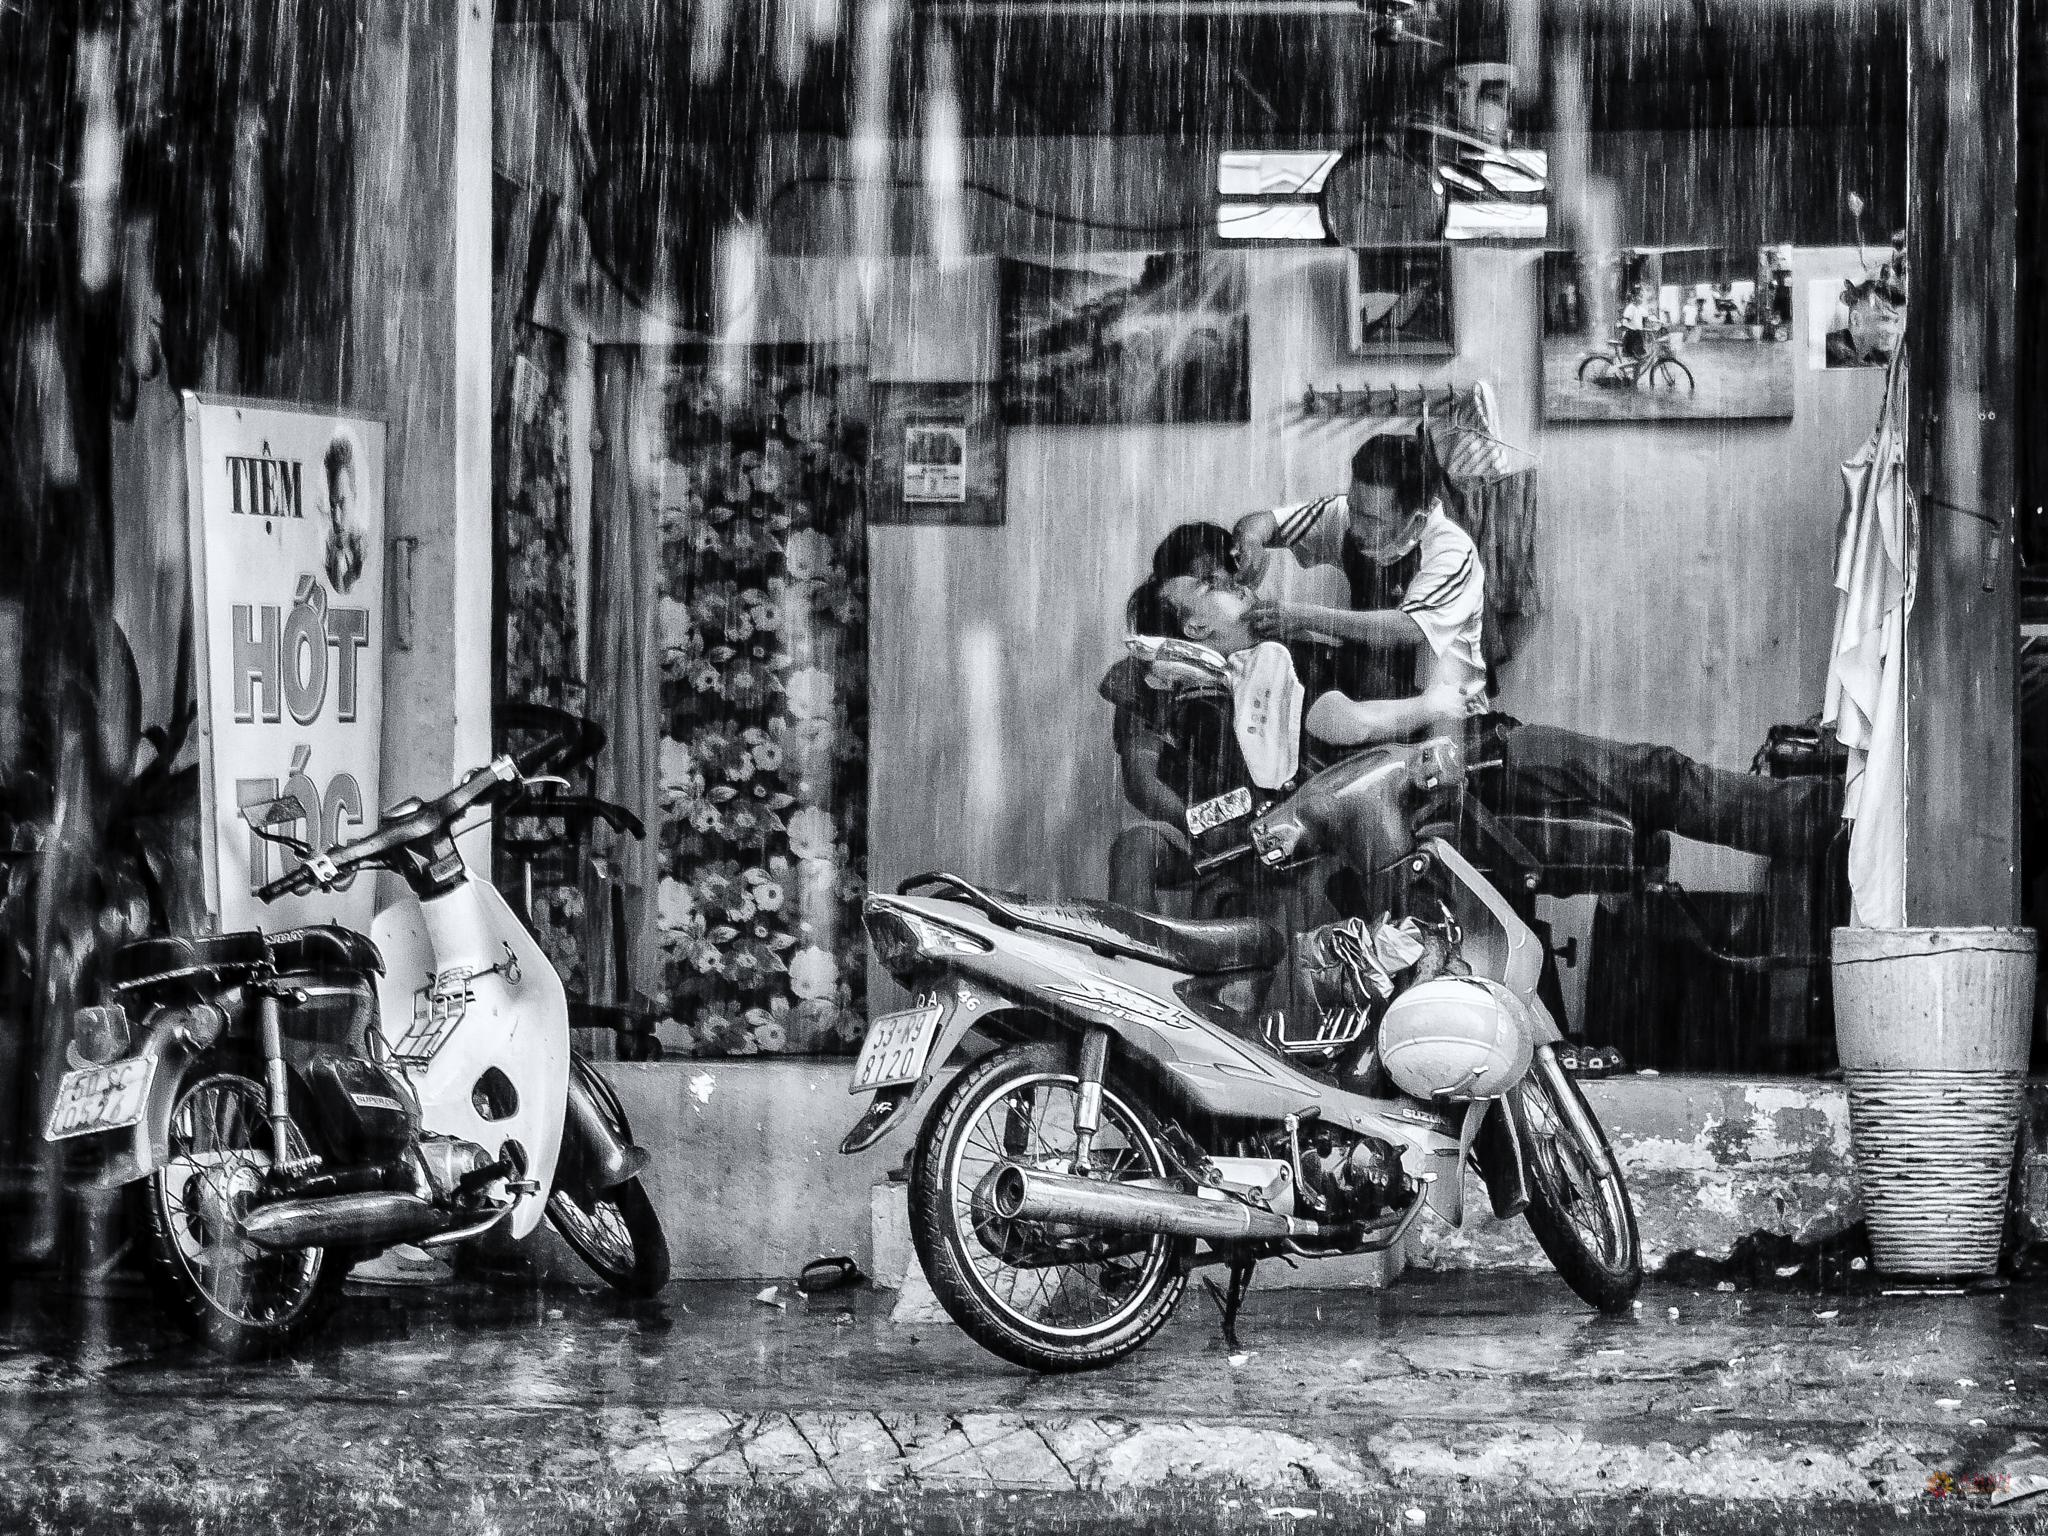 Shaving under monsoon by Sylvain Marcelle